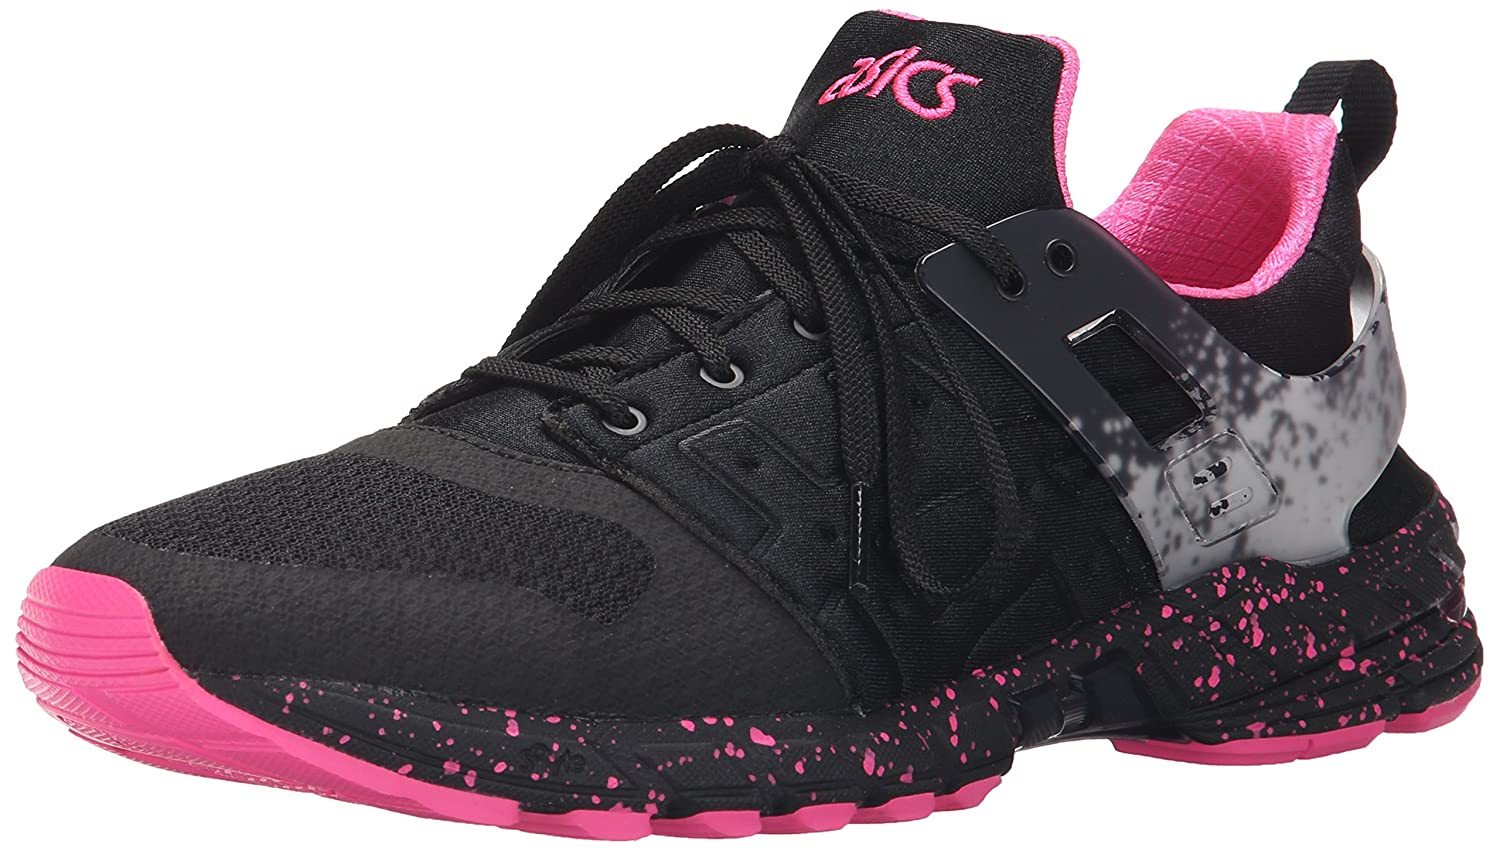 ASICS GT DS Retro Running Shoe B00ZQ4NR7S 9.5 M US|Black/Knock Out Pink